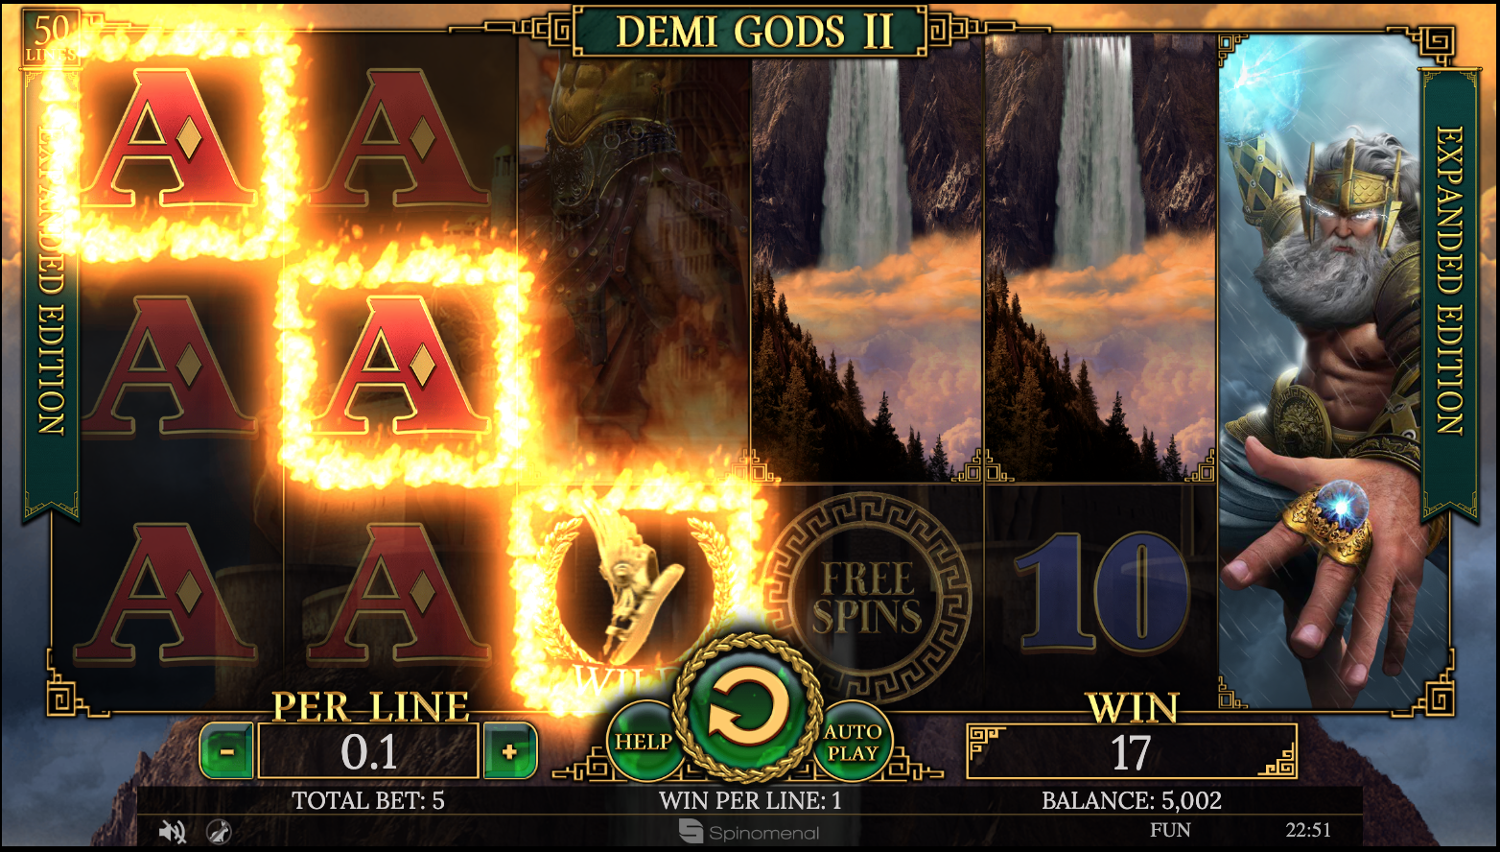 Demi Gods II Expanded version base game win